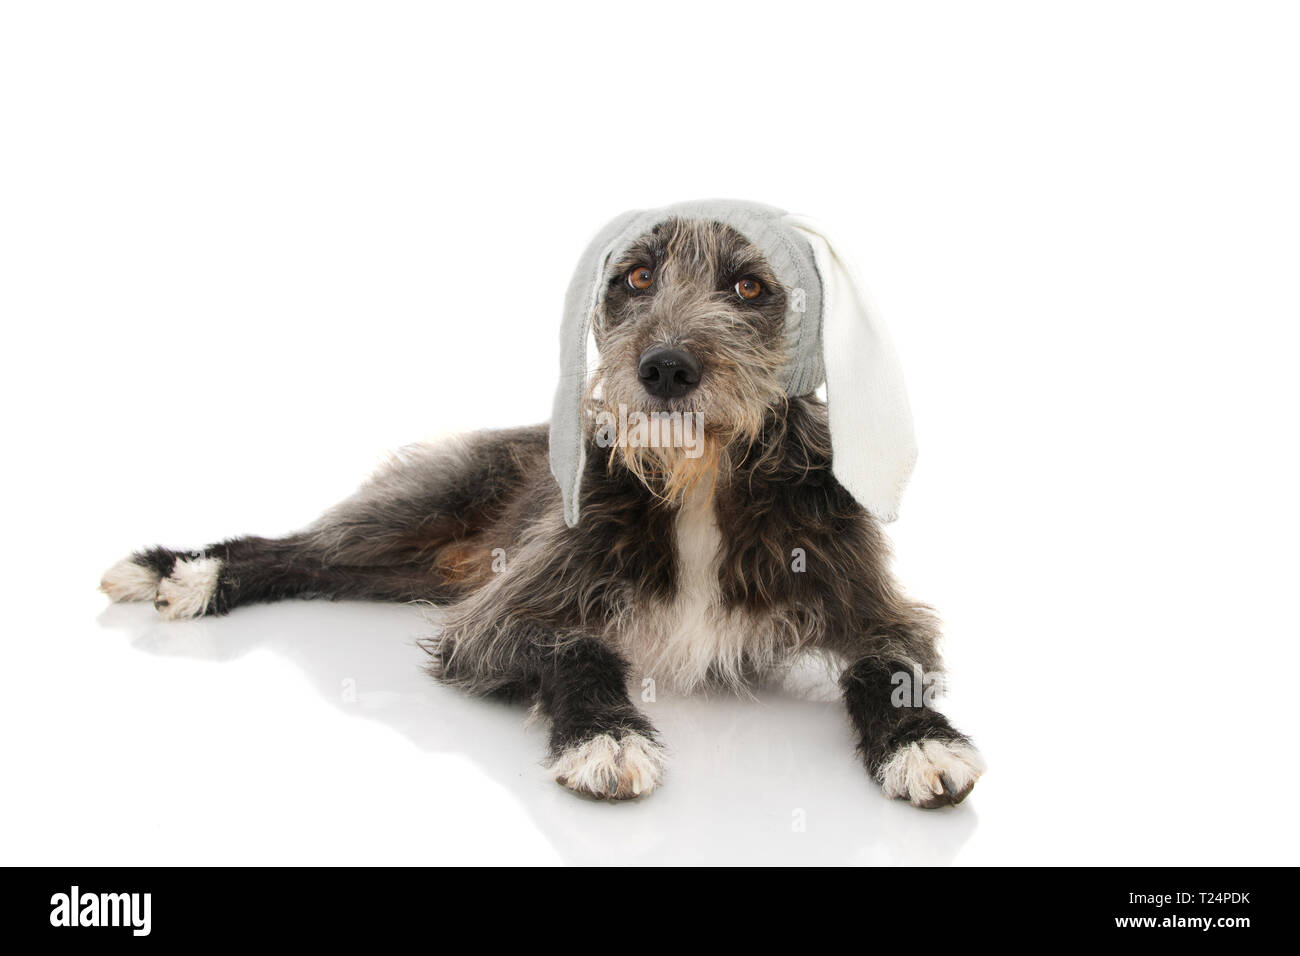 FUNNY EASTER DOG. BLACK PUPPY WEARING RABBIT EARS HAT. ISOLATED STUDIO SHOT AGAINST WHITE BACKGROUND. - Stock Image